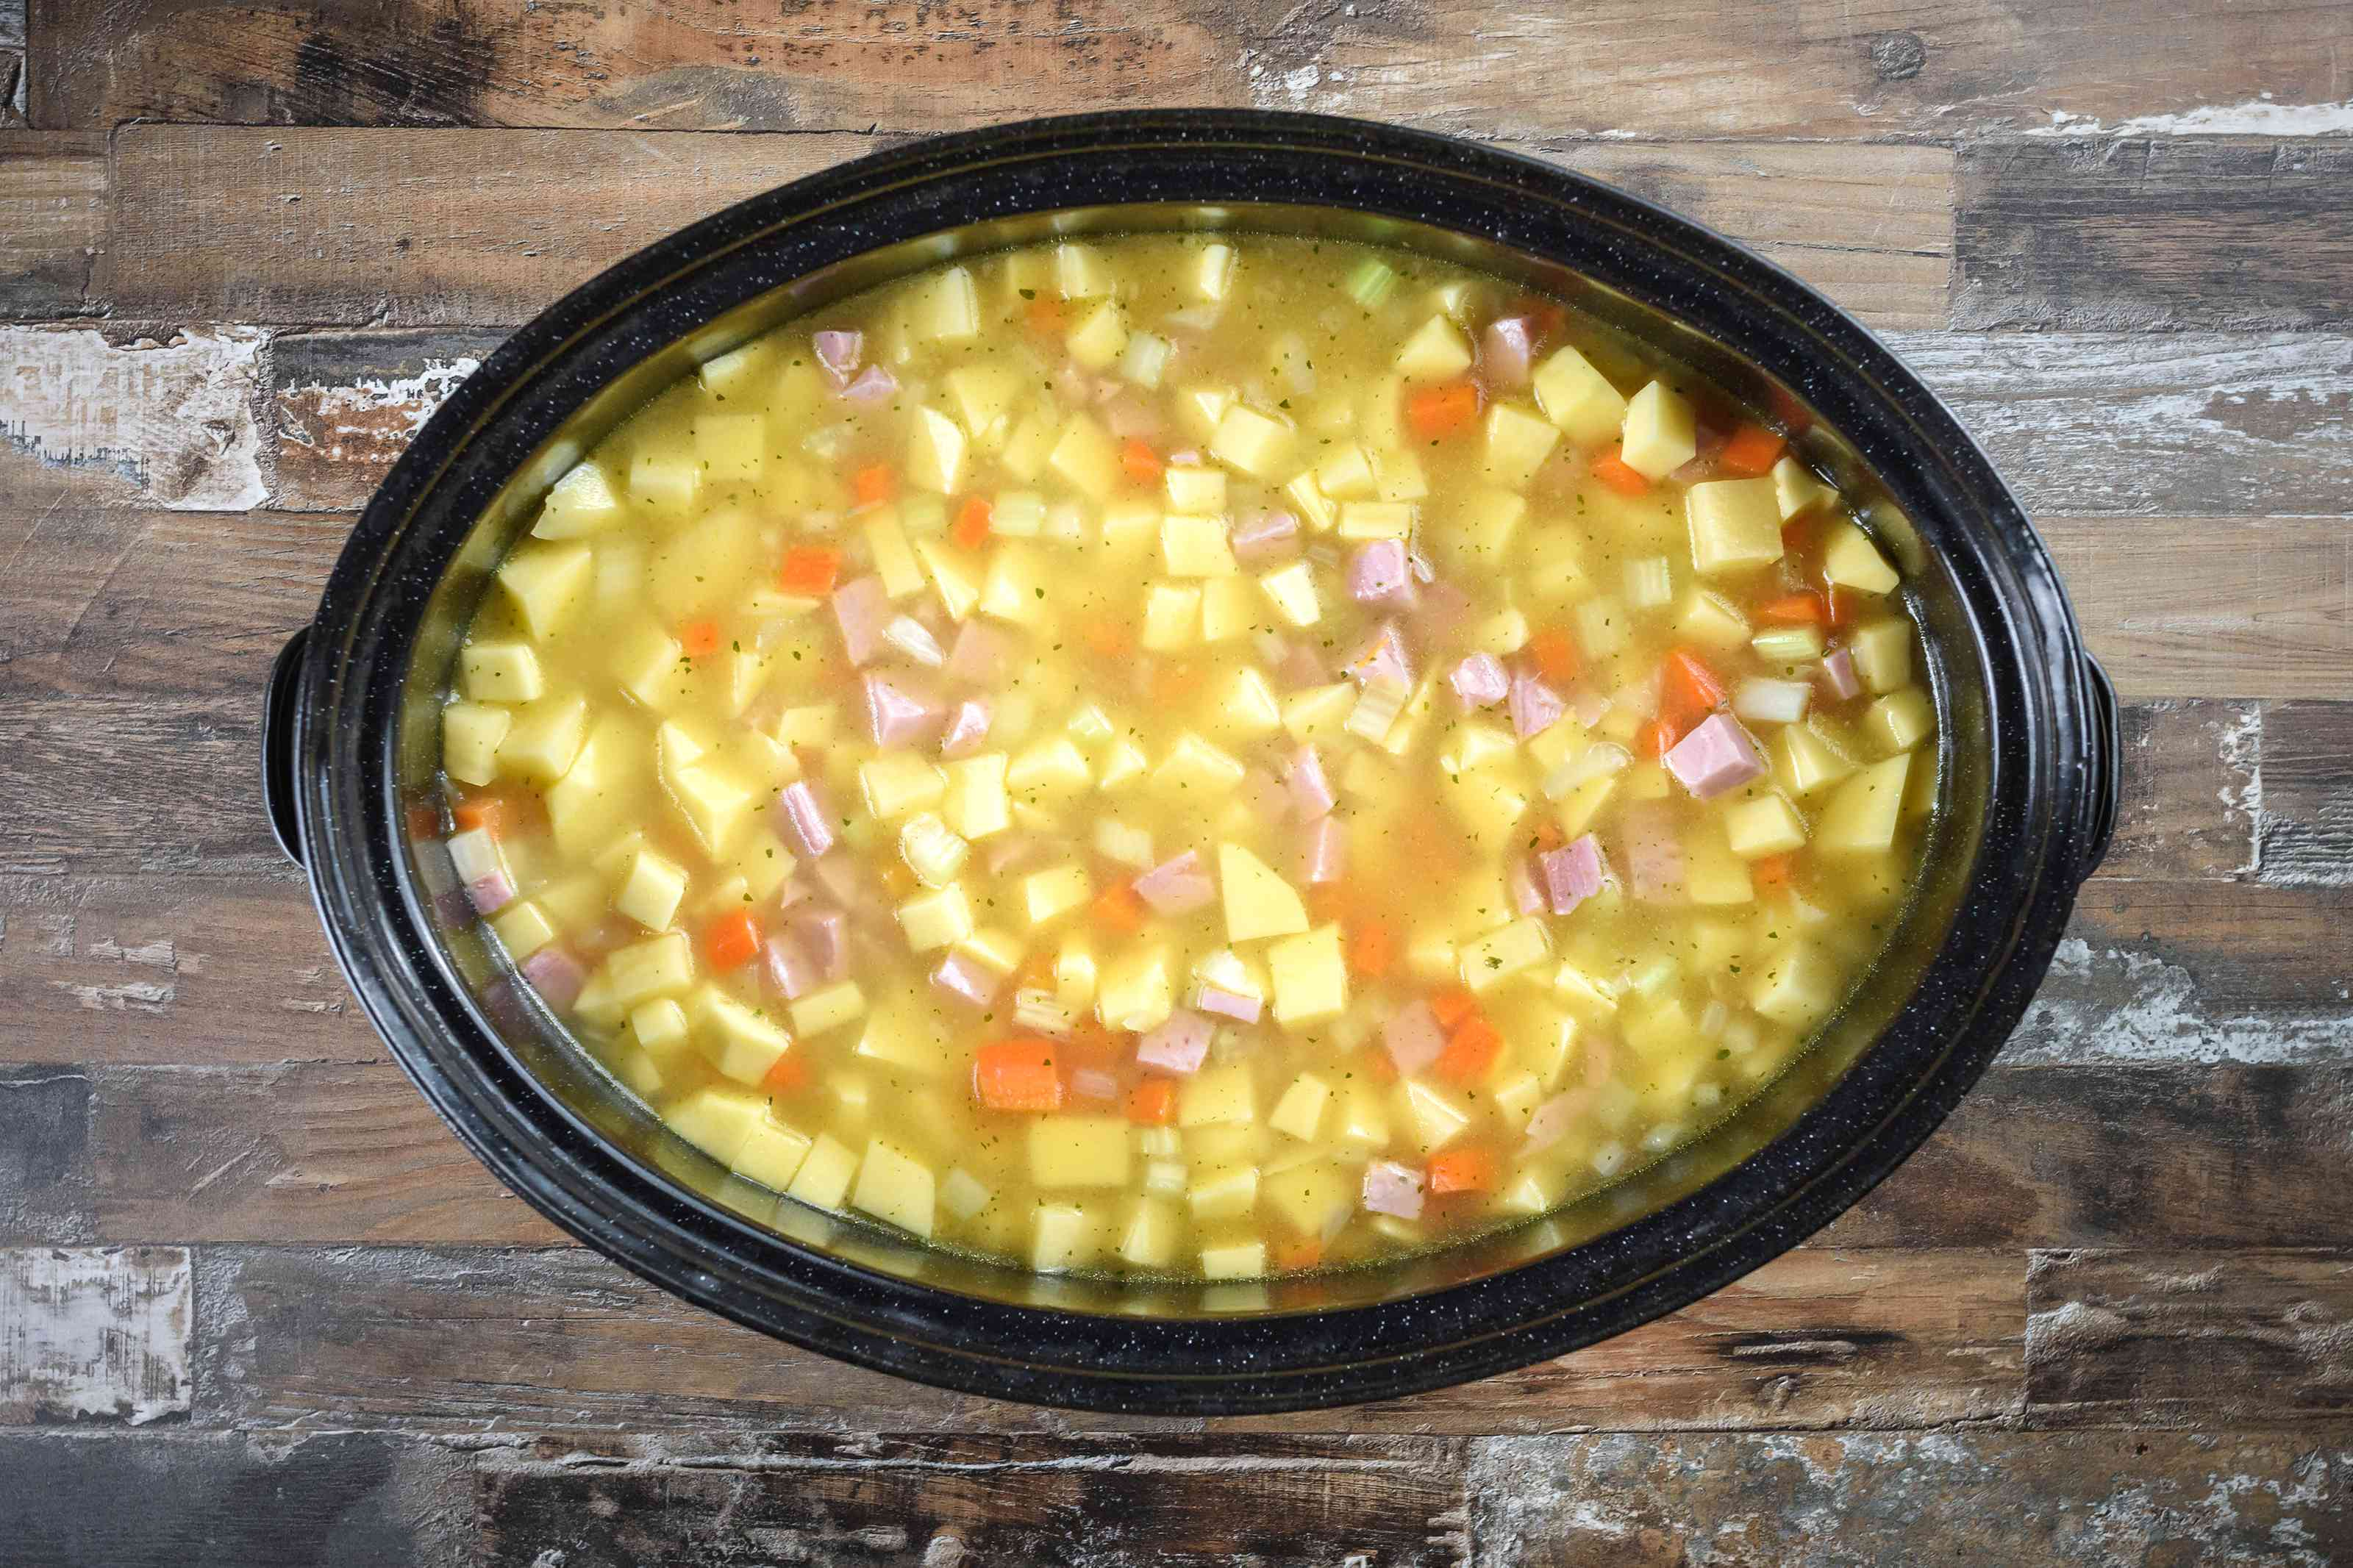 Transfer cooked vegetables to slowcooker